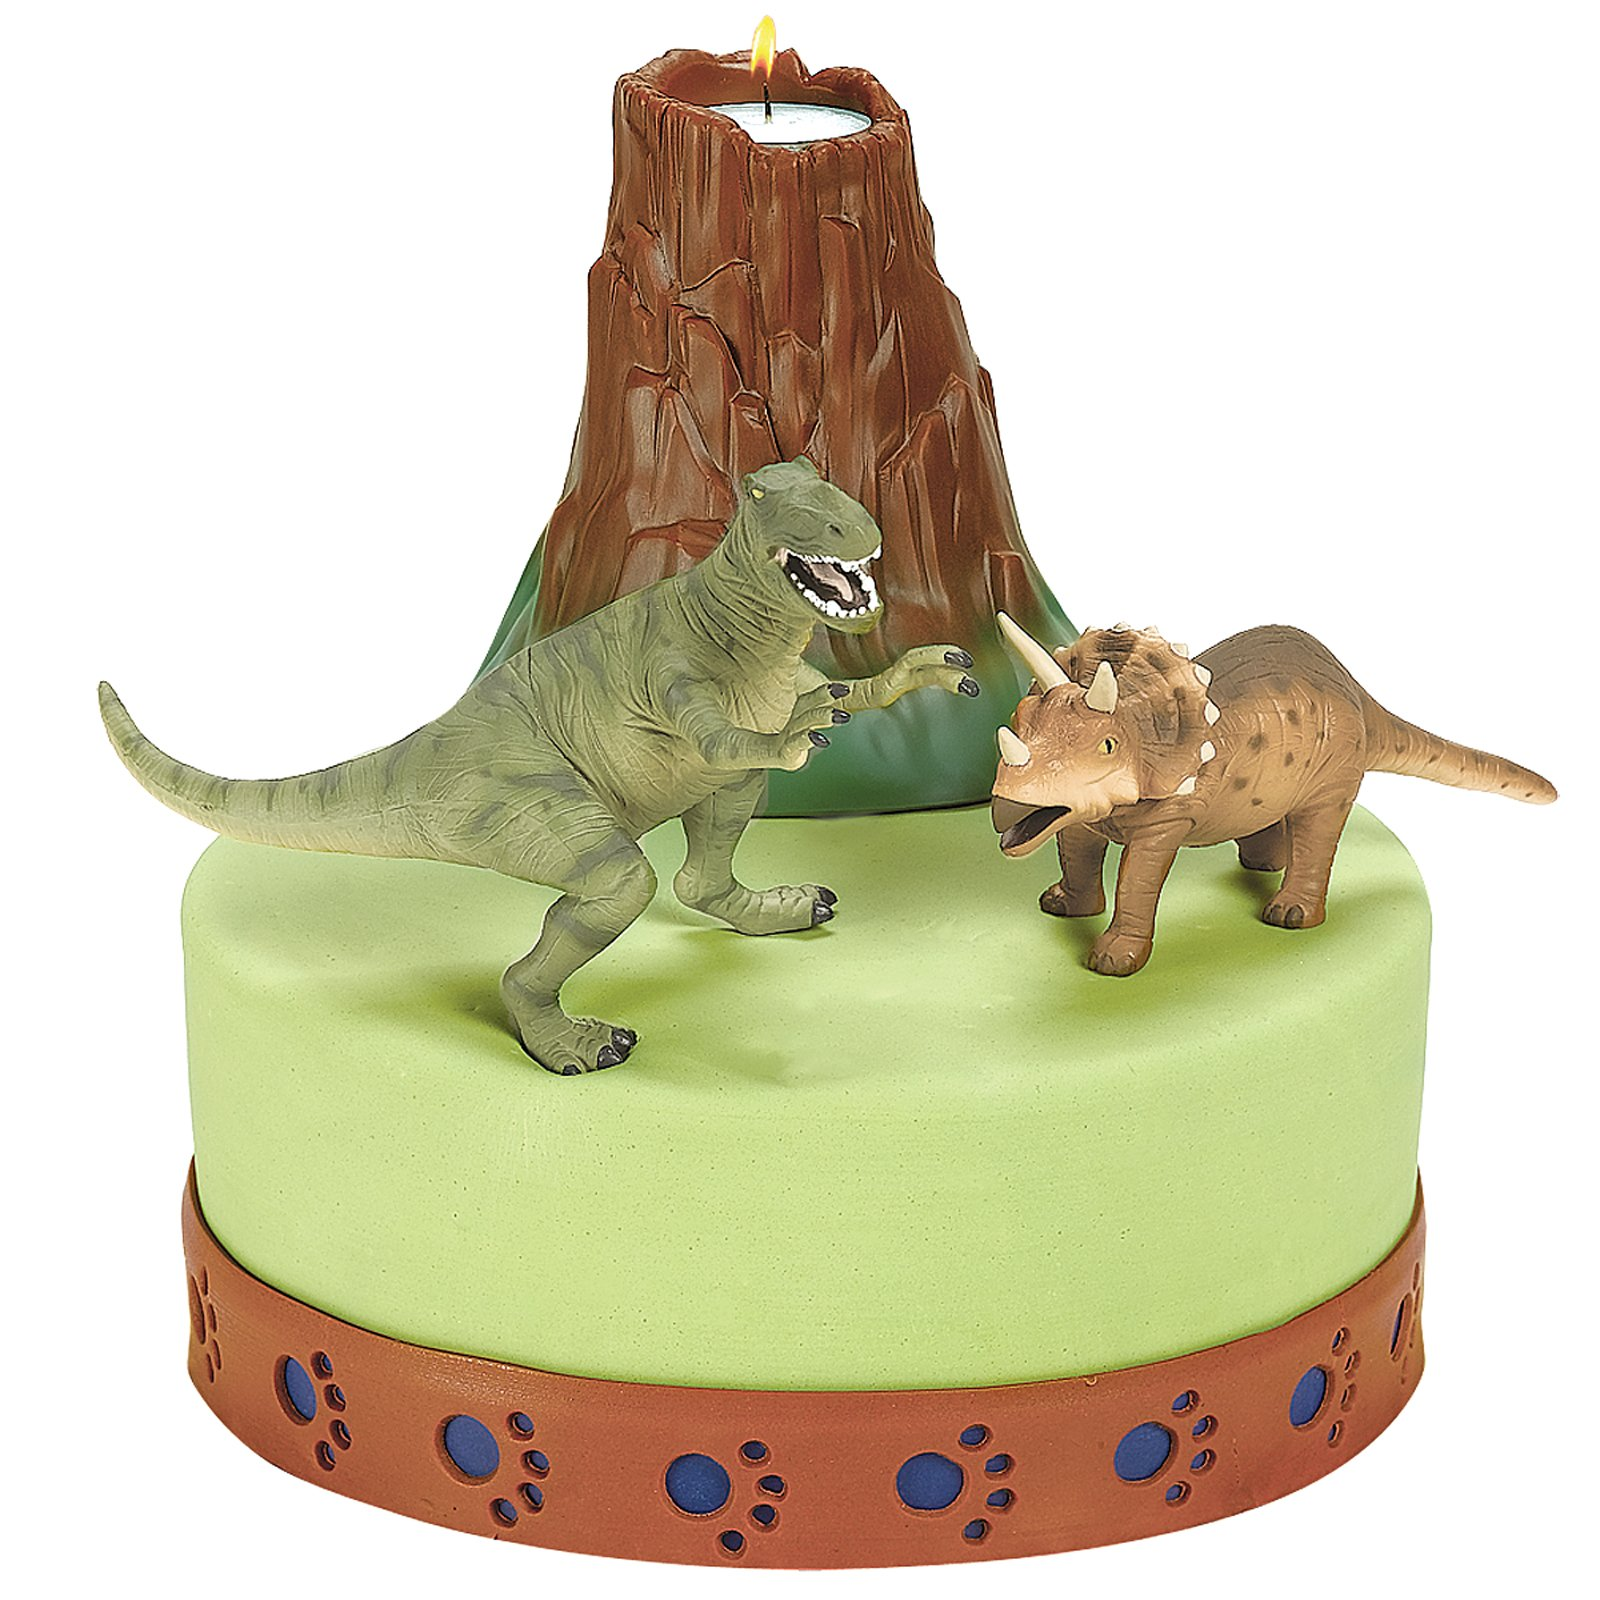 Dinosaur Cake Accessories : Dinosaur Cakes   Decoration Ideas Little Birthday Cakes